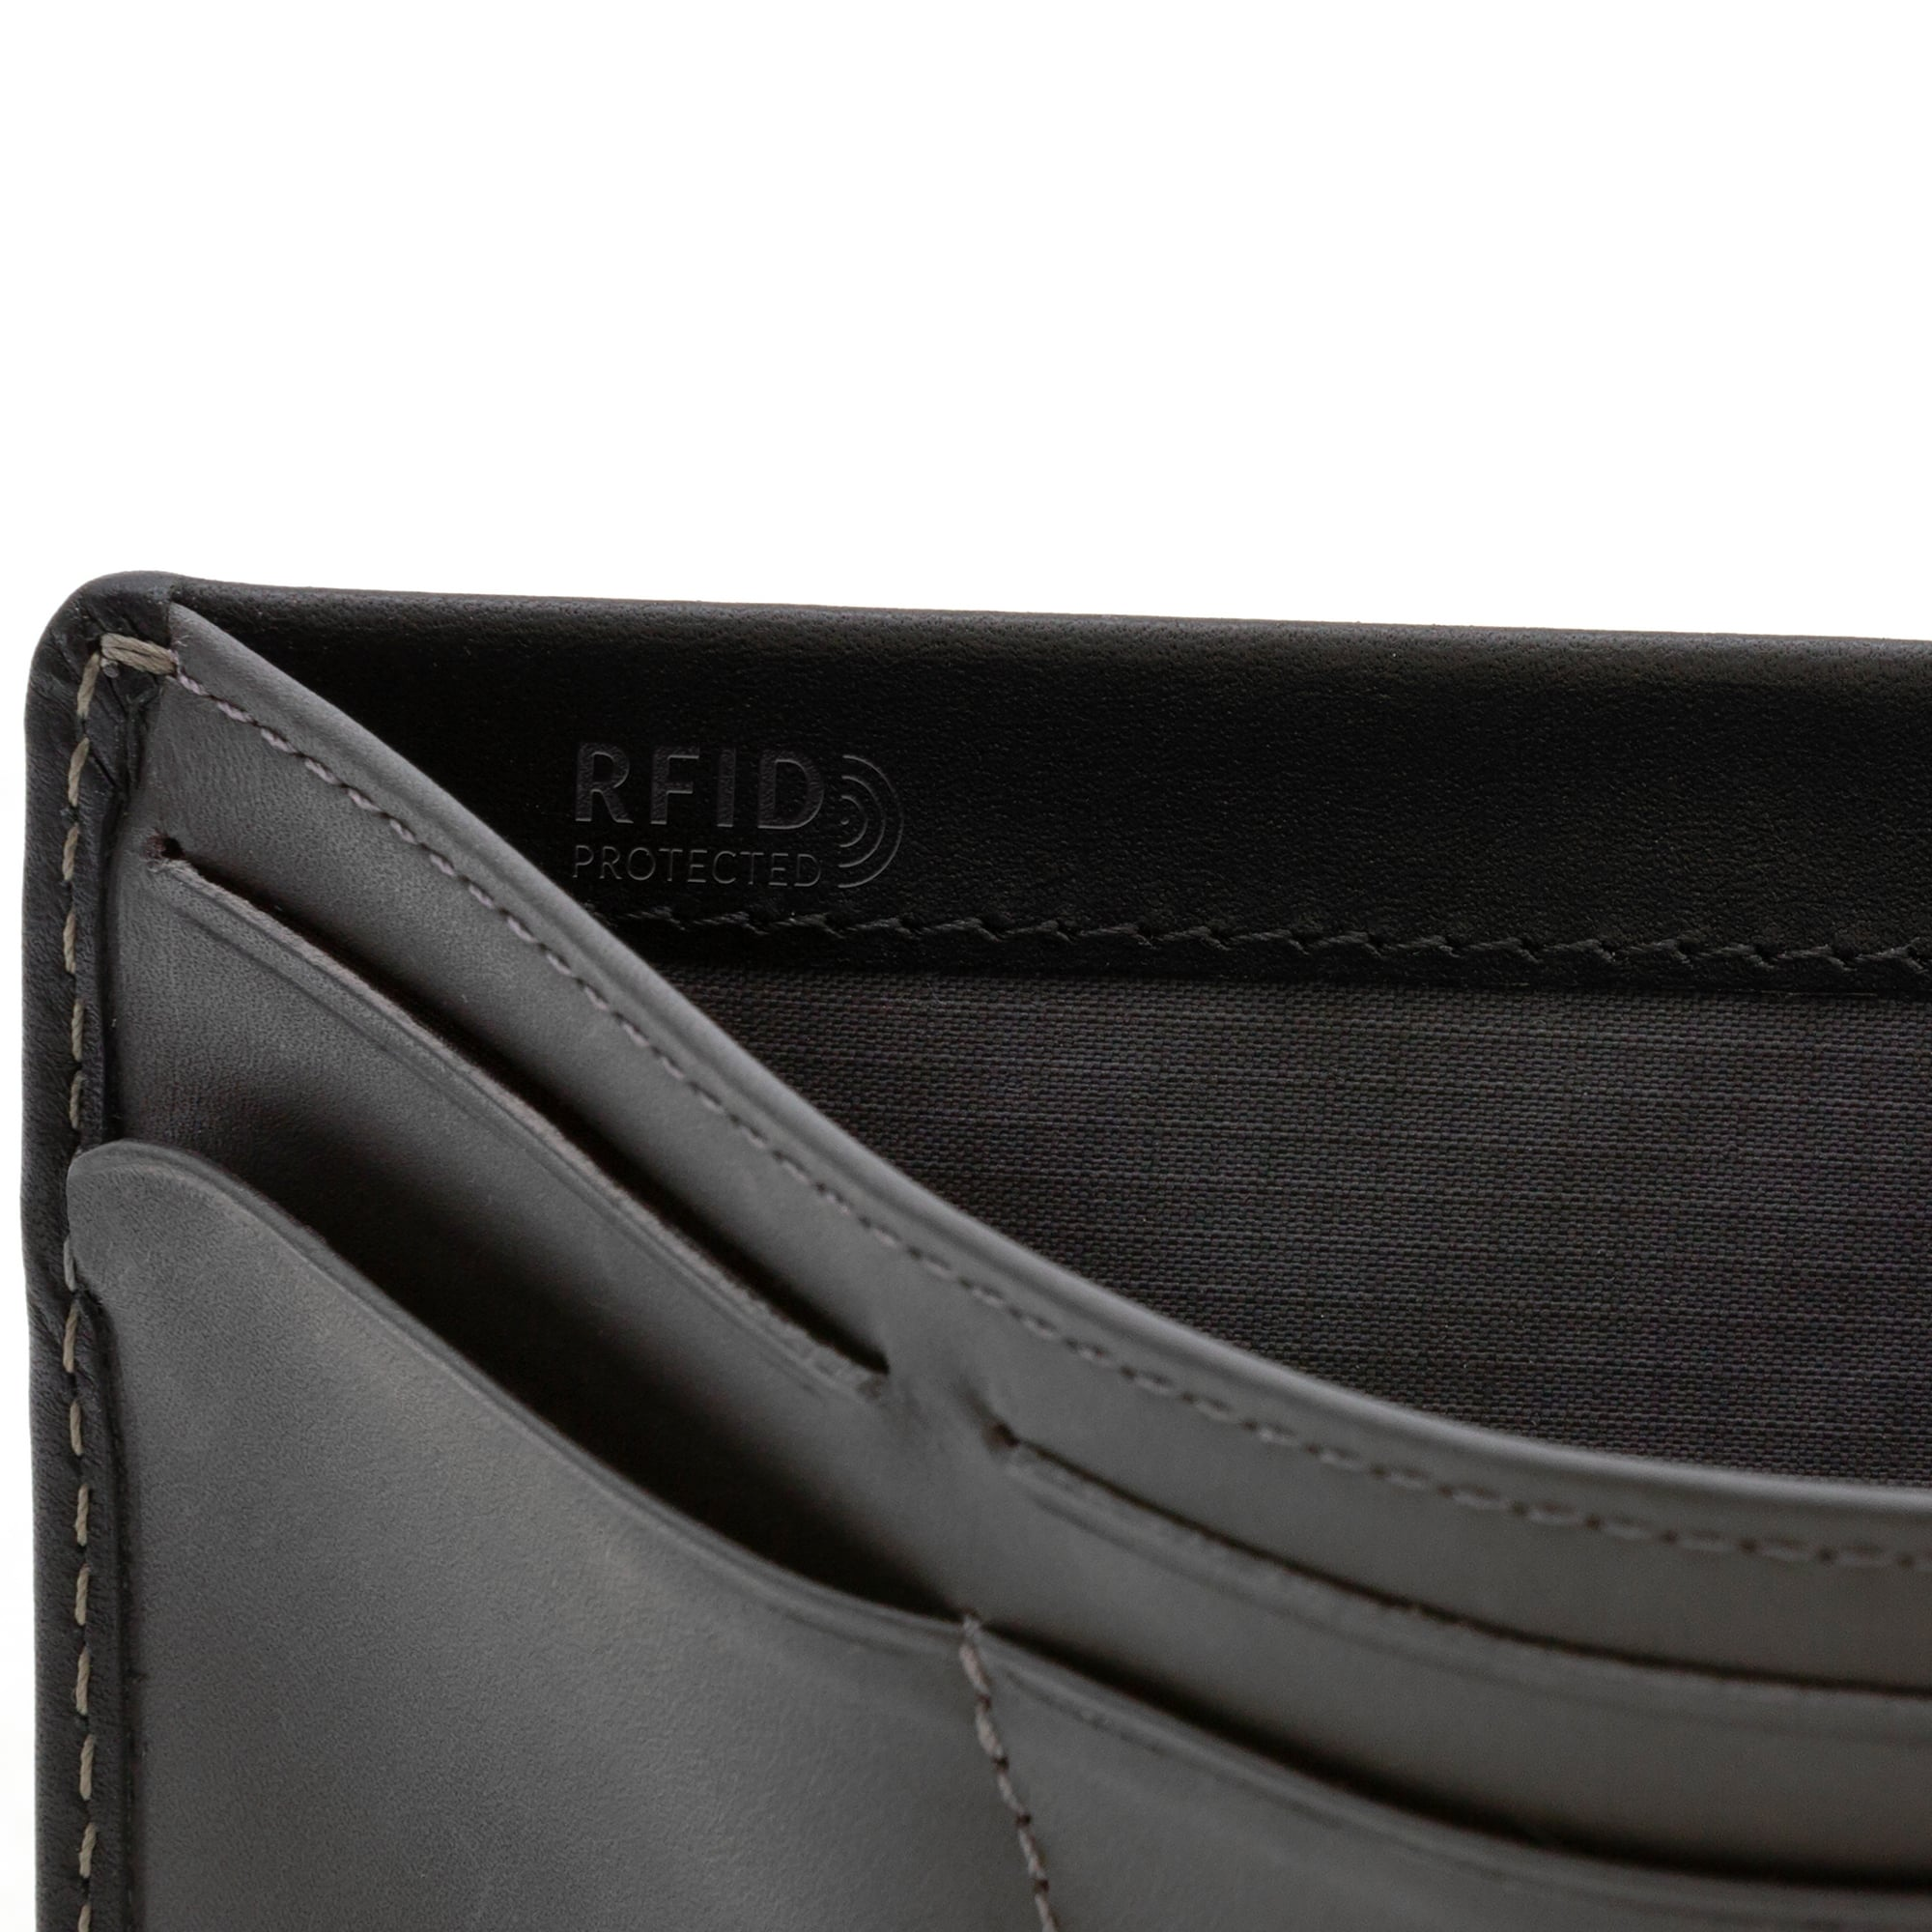 how to serch look out for great deals Bellroy Bellroy Travel Wallet Black WTRA-2771-RFID